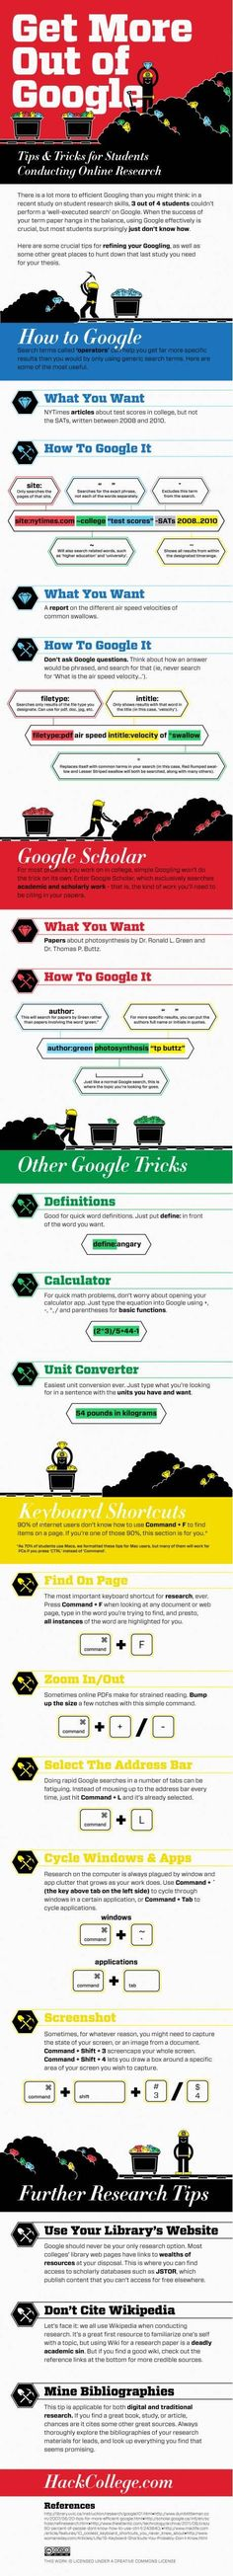 How To Become A Google Pro- didn't know all the different ways to search! Valuable information